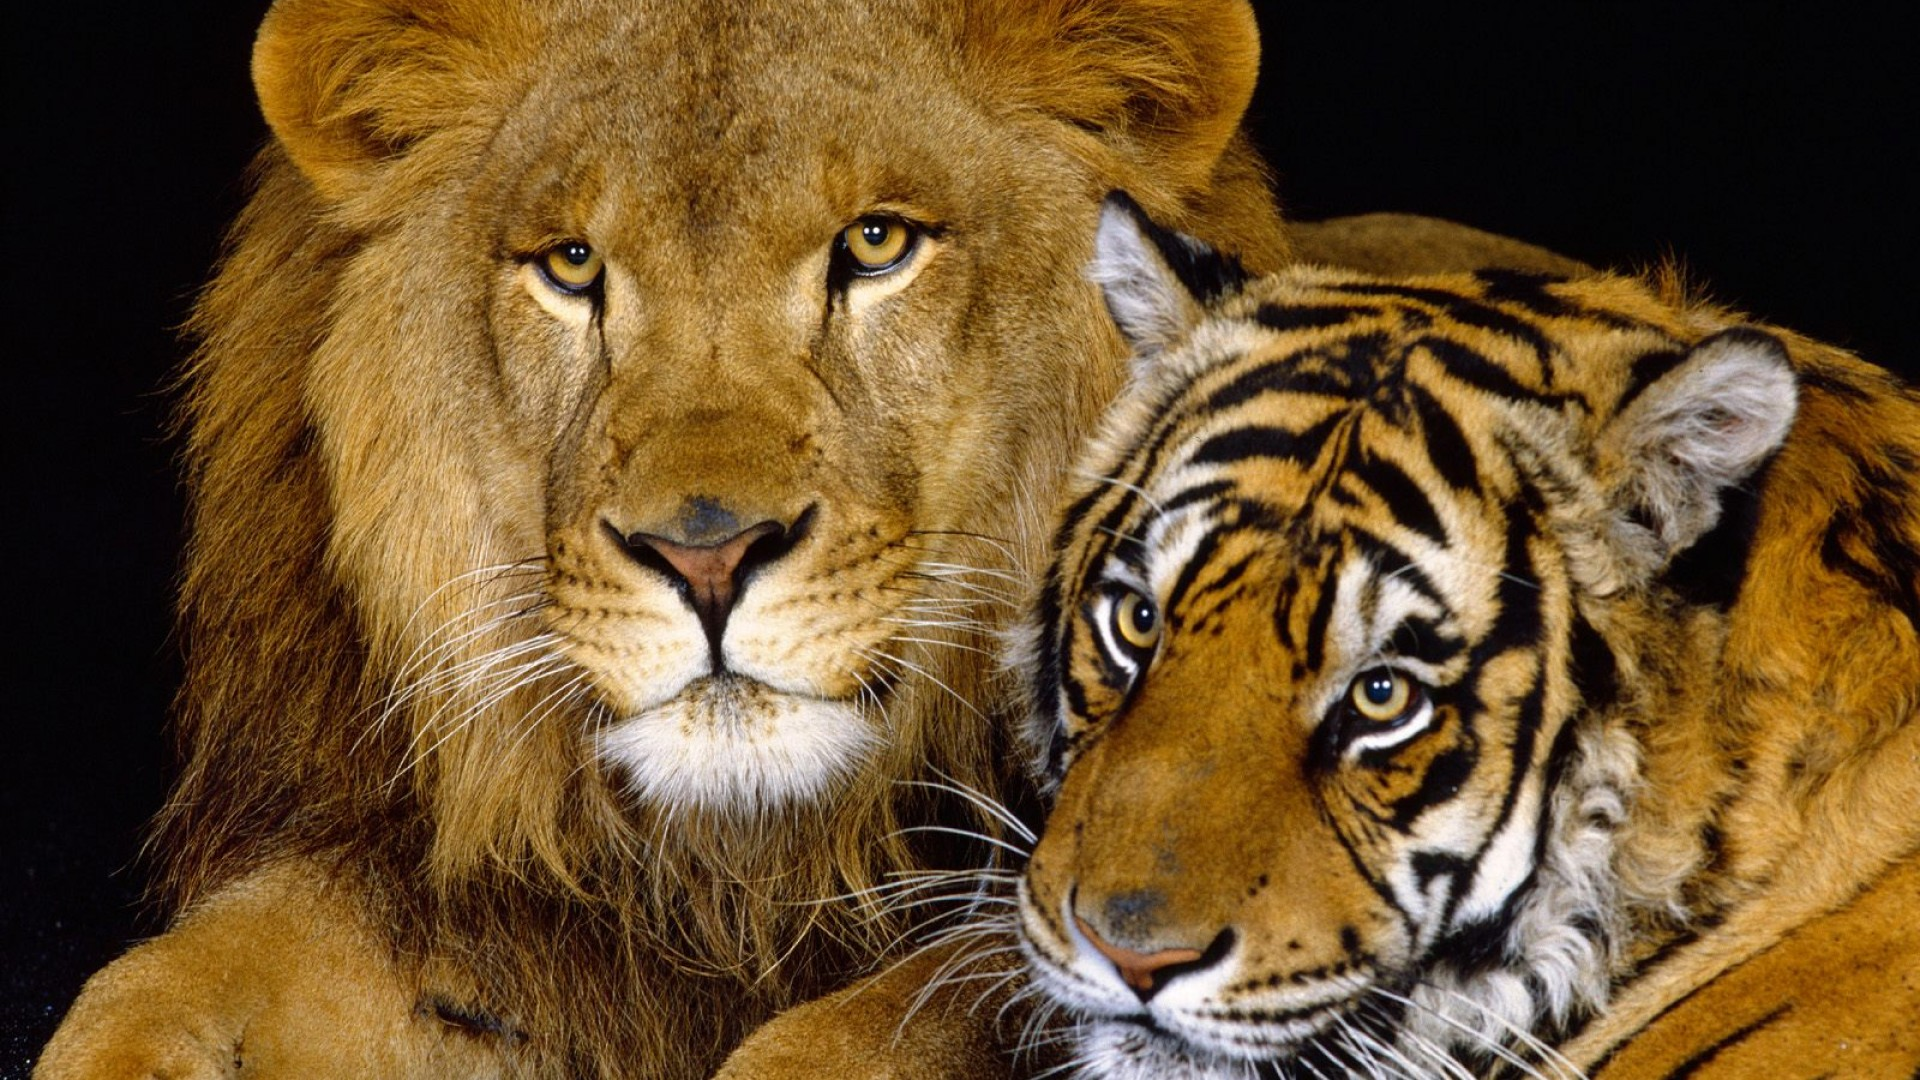 image of lion face wallpaper image of lion face wallpaper 1920x1080